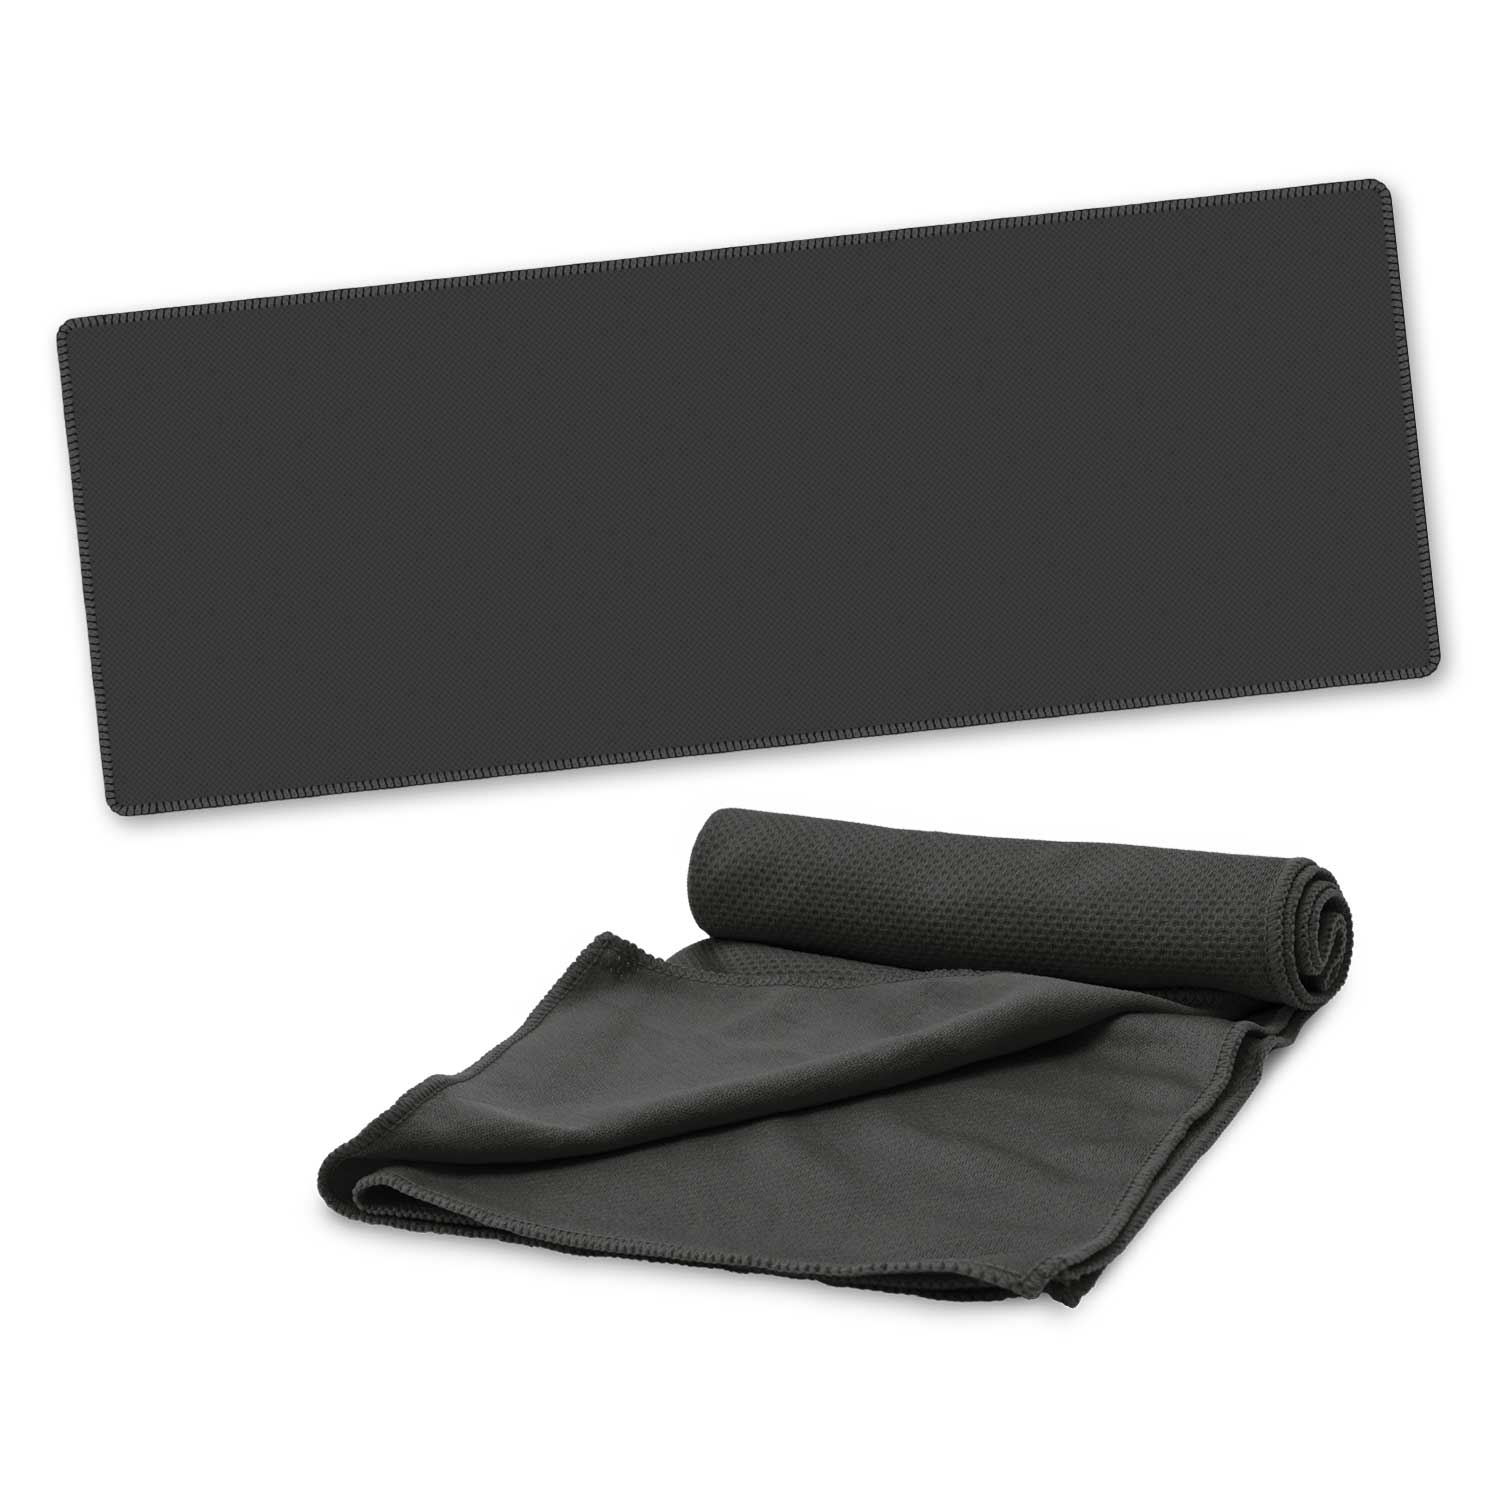 Active Cooling Sports Towel - Pouch